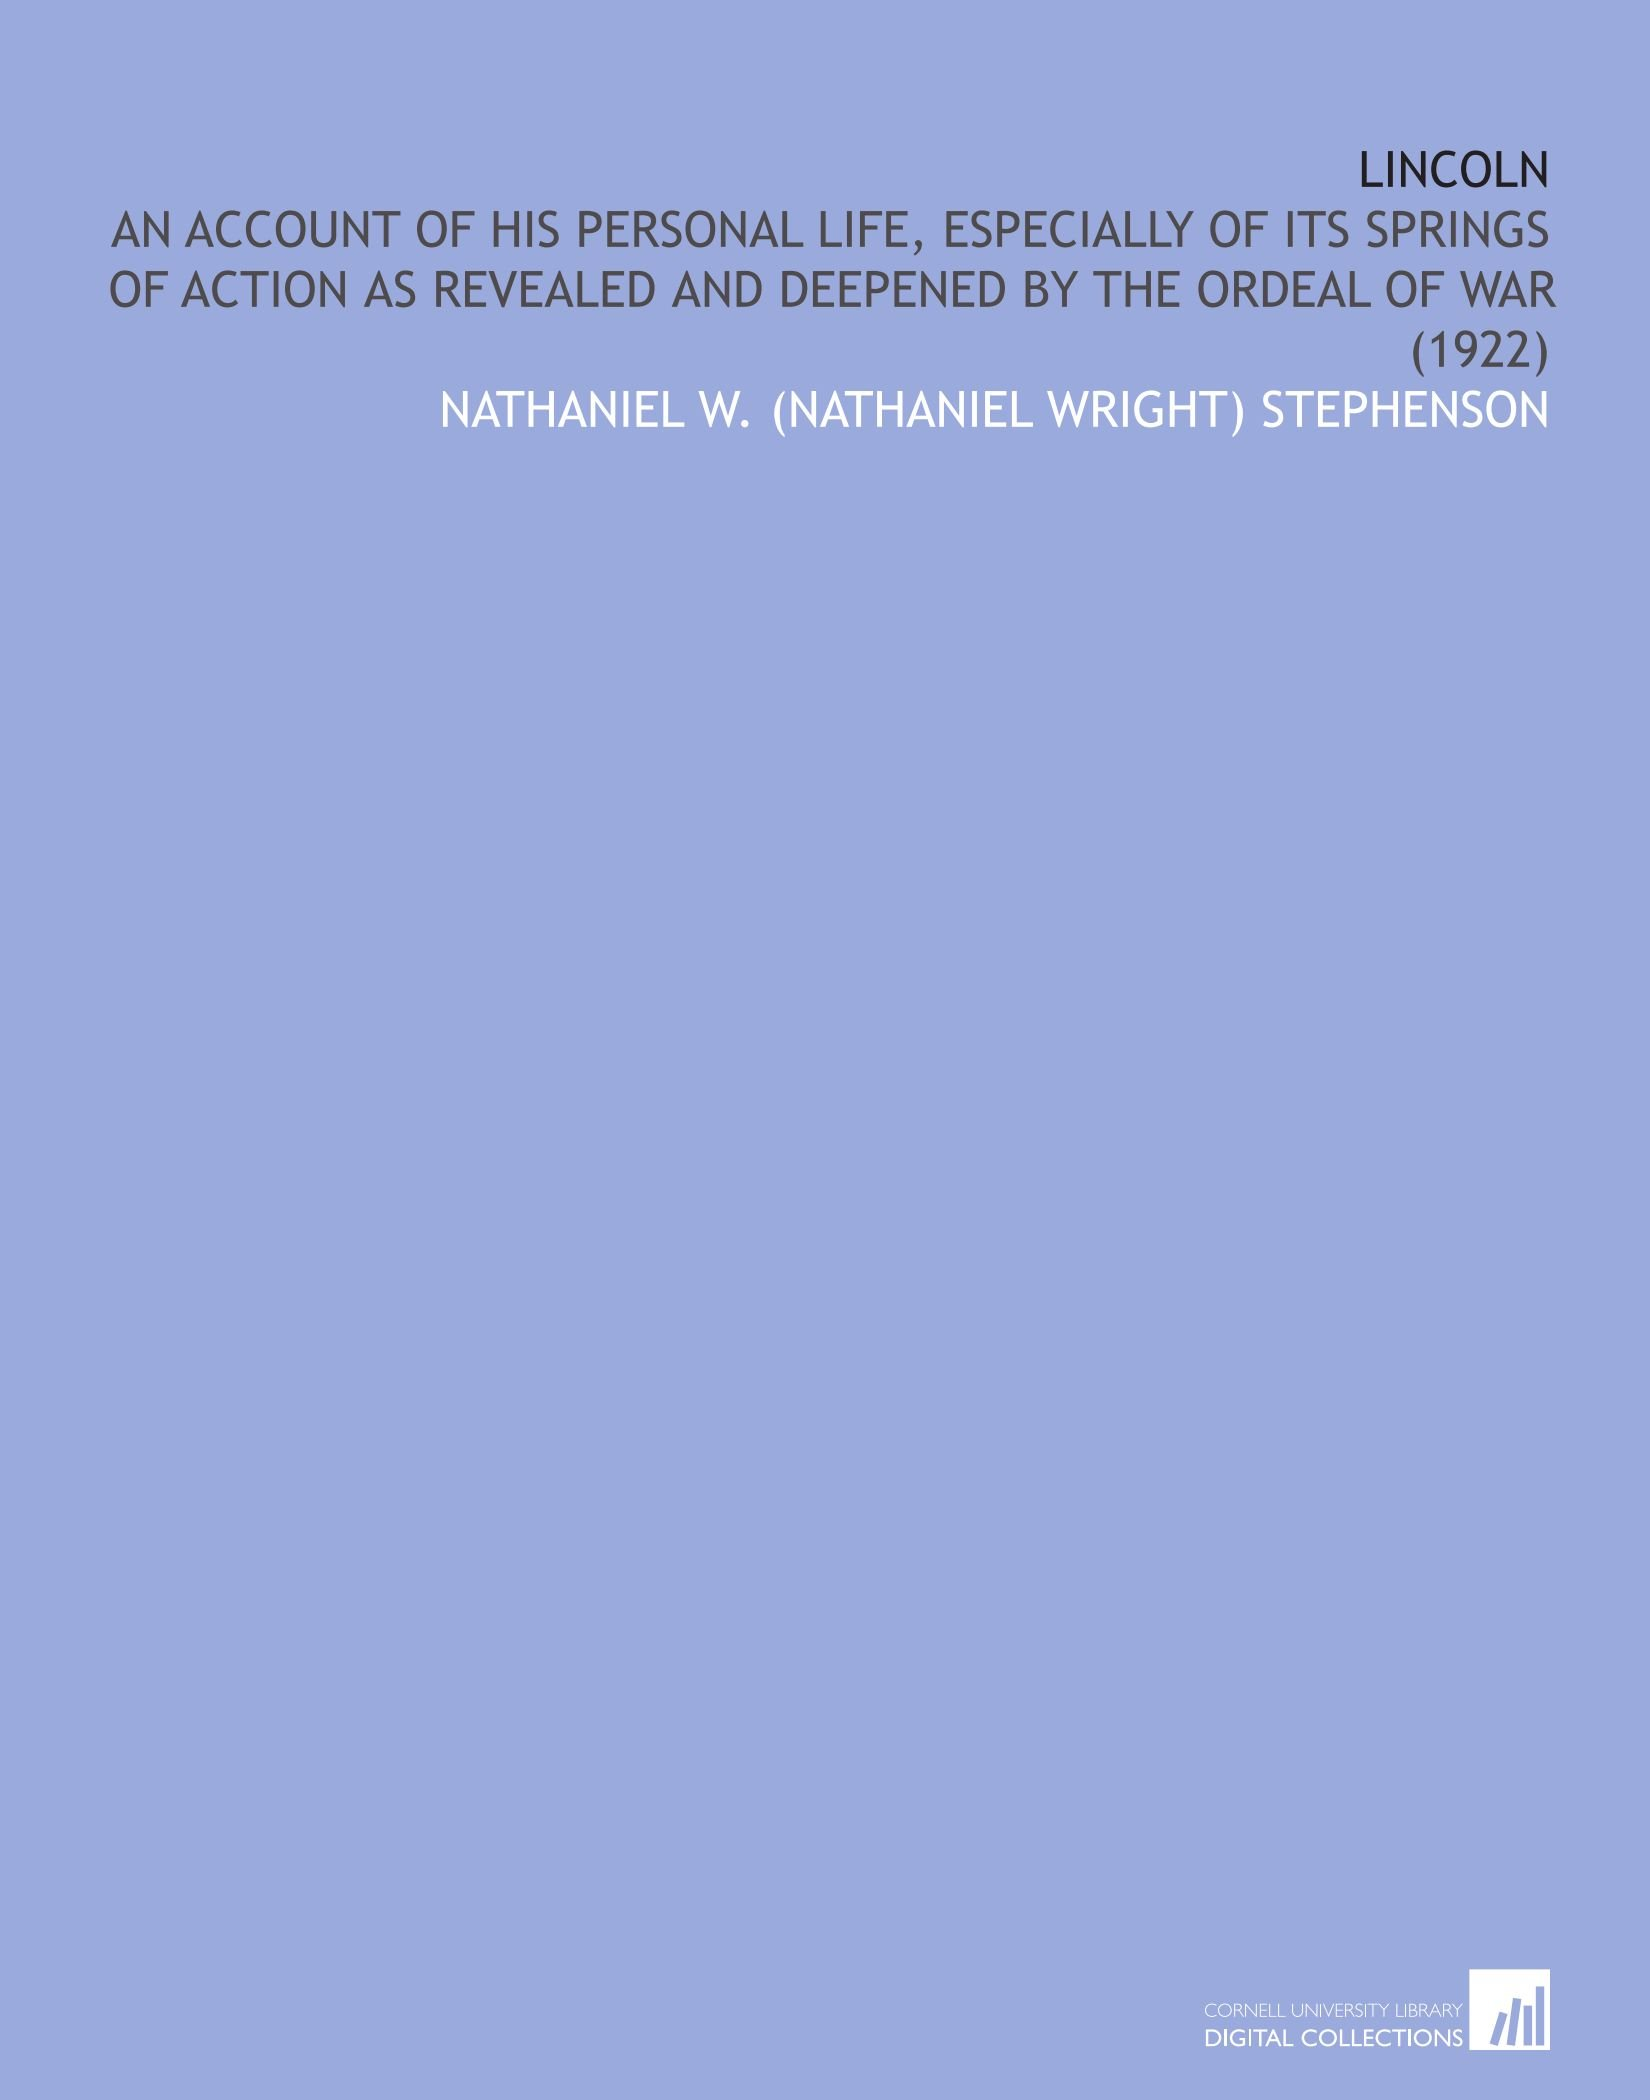 Download Lincoln: An Account of His Personal Life, Especially of Its Springs of Action as Revealed and Deepened by the Ordeal of War (1922) pdf epub